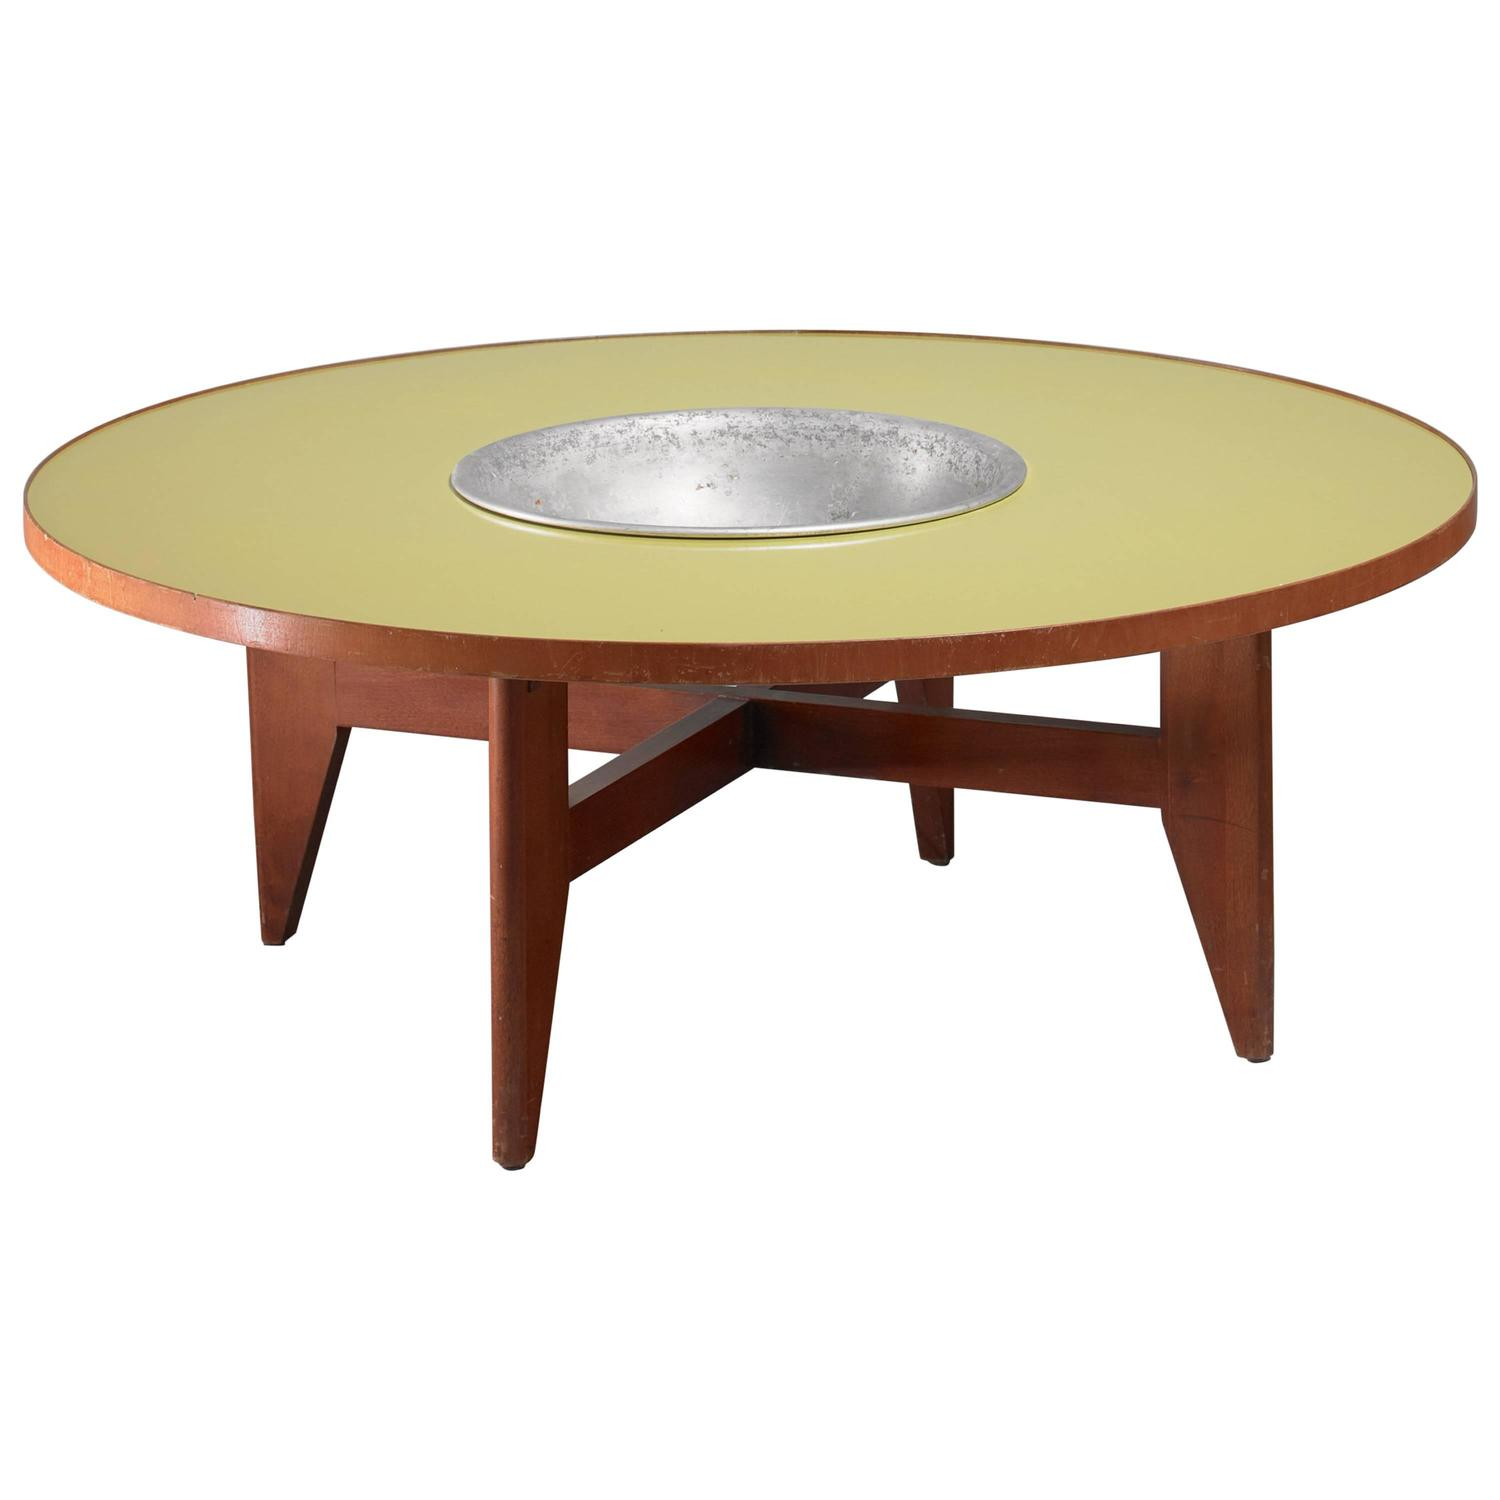 George Nelson Planter Table for Herman Miller USA 1940s For Sale